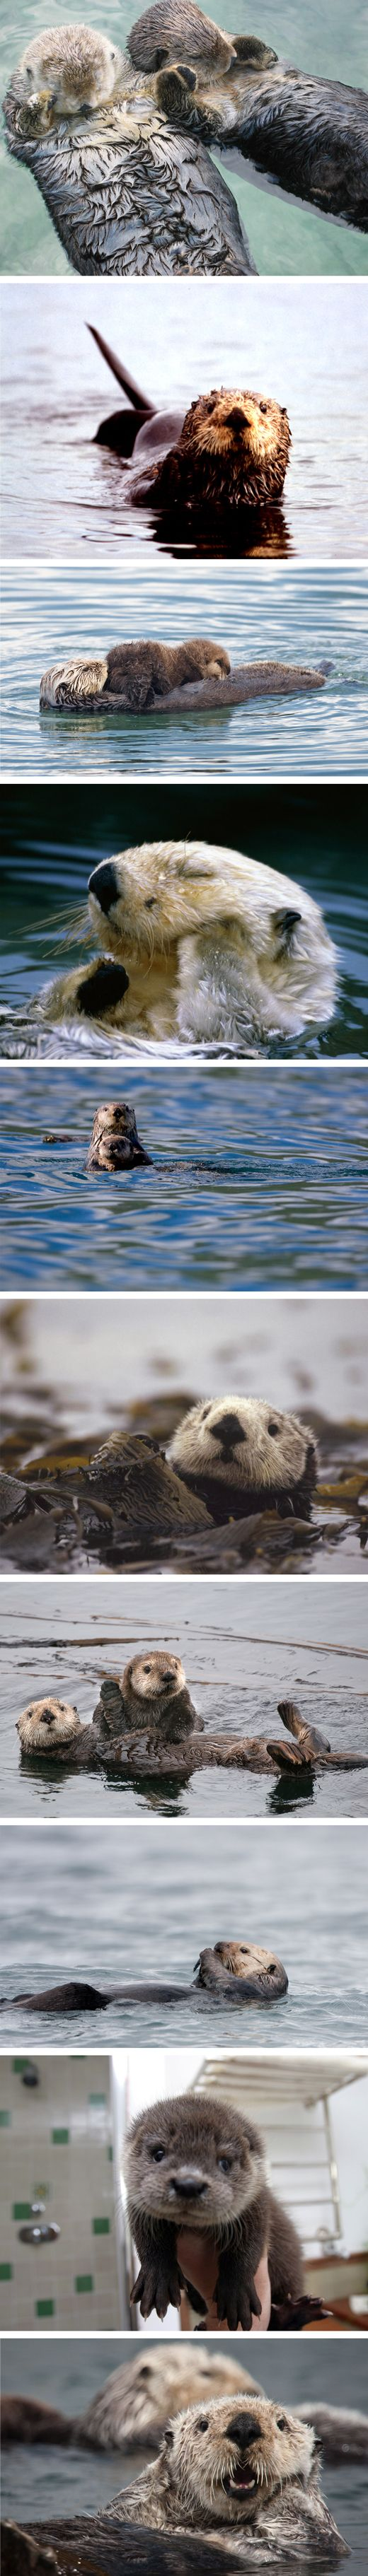 Sea otters.... perhaps the cutest animal alive!